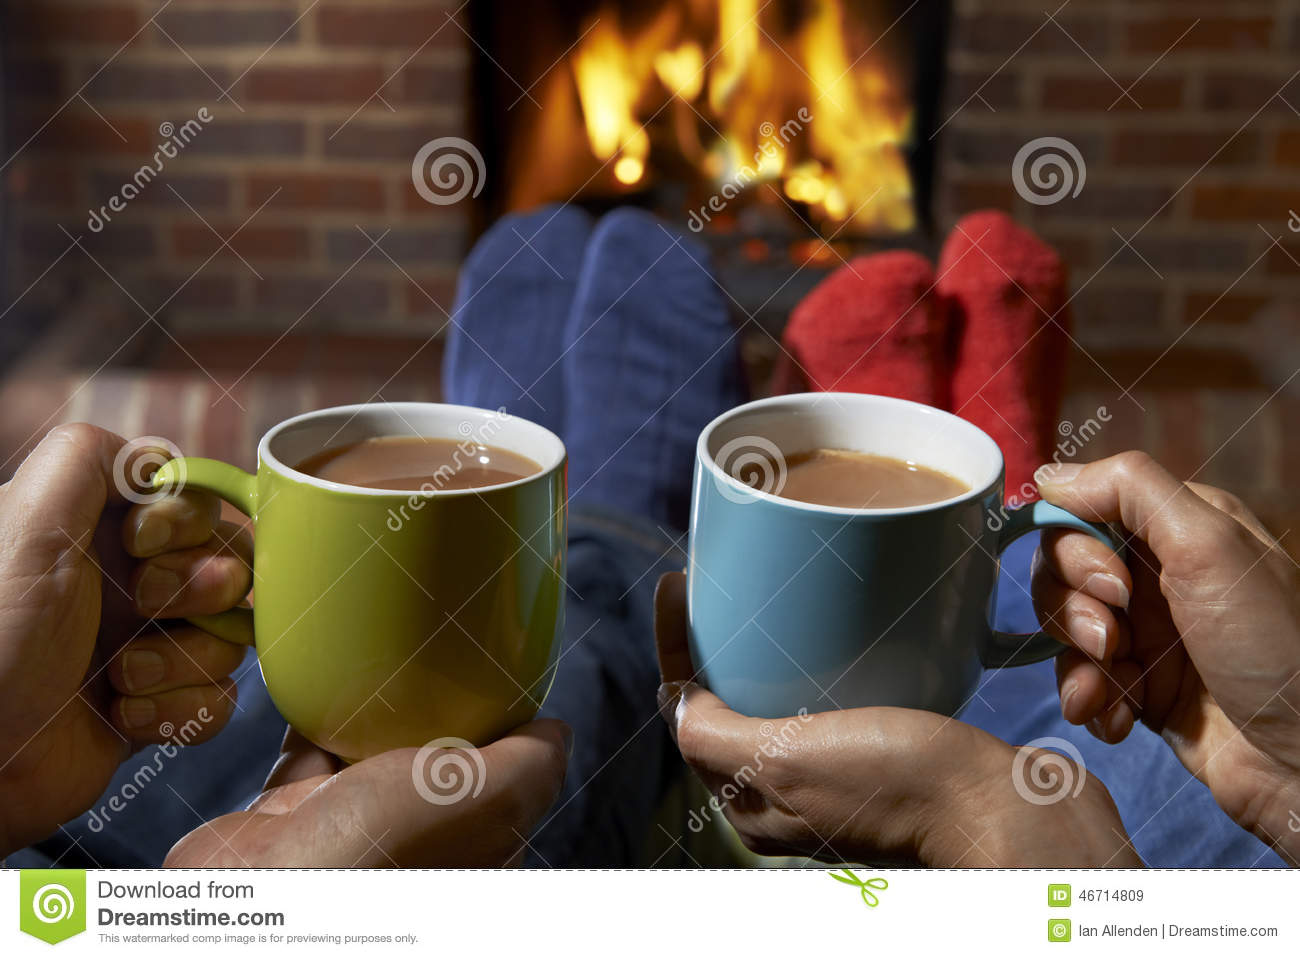 Man Relaxing Hot Drink Sofa Watching Tv additionally Grace Gogarty Different Dog Breeds further Marshmallows Clipart as well Charlie And The Chocolate Factory Coat as well Stock Illustration Square Biscuit Illustration Illiustration Image64661237. on chocolate man cartoon